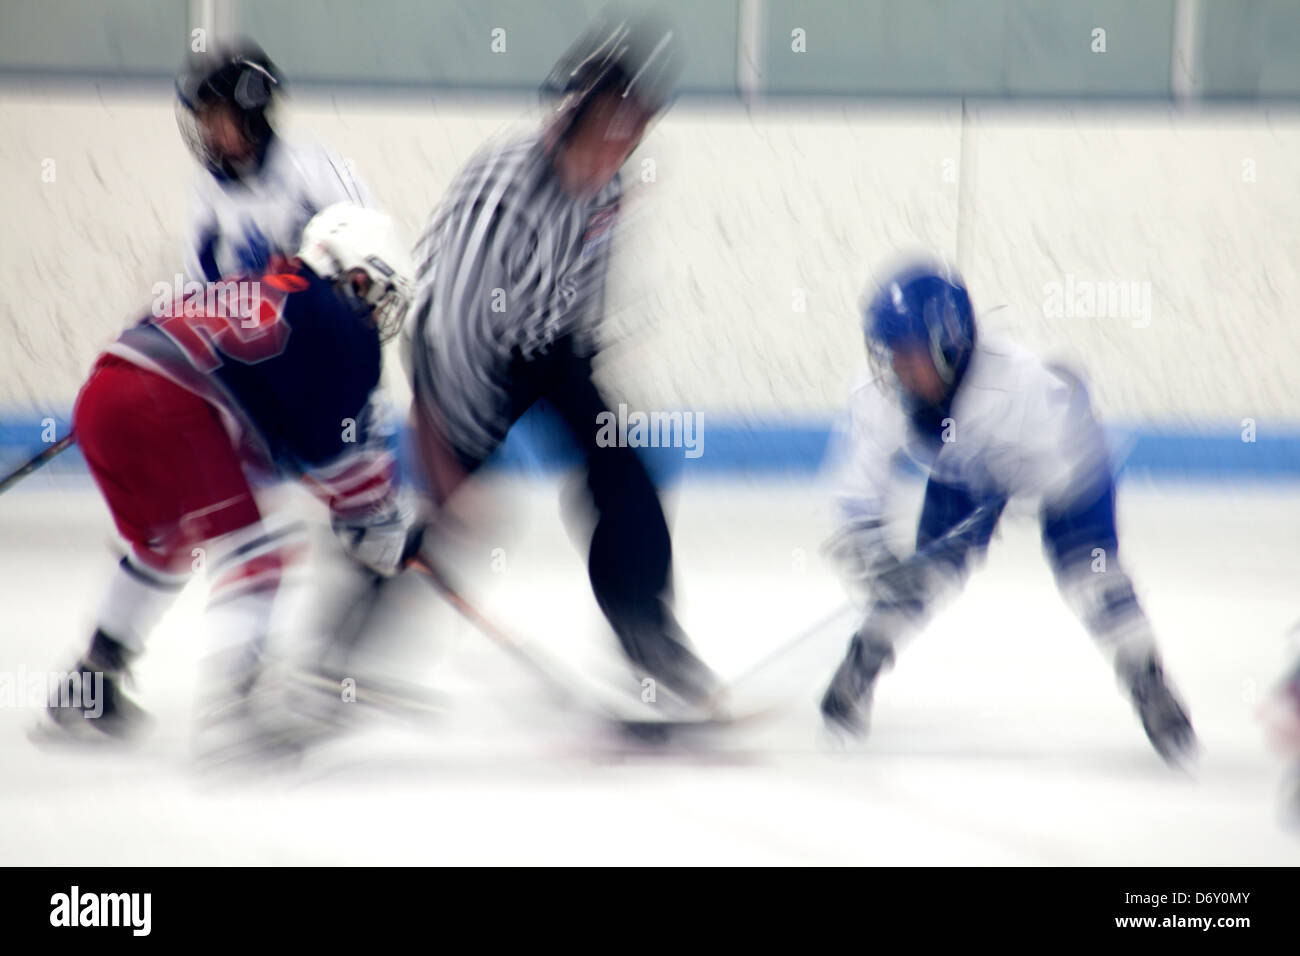 Blurred action of hockey faceoff. St Paul Minnesota MN USA - Stock Image